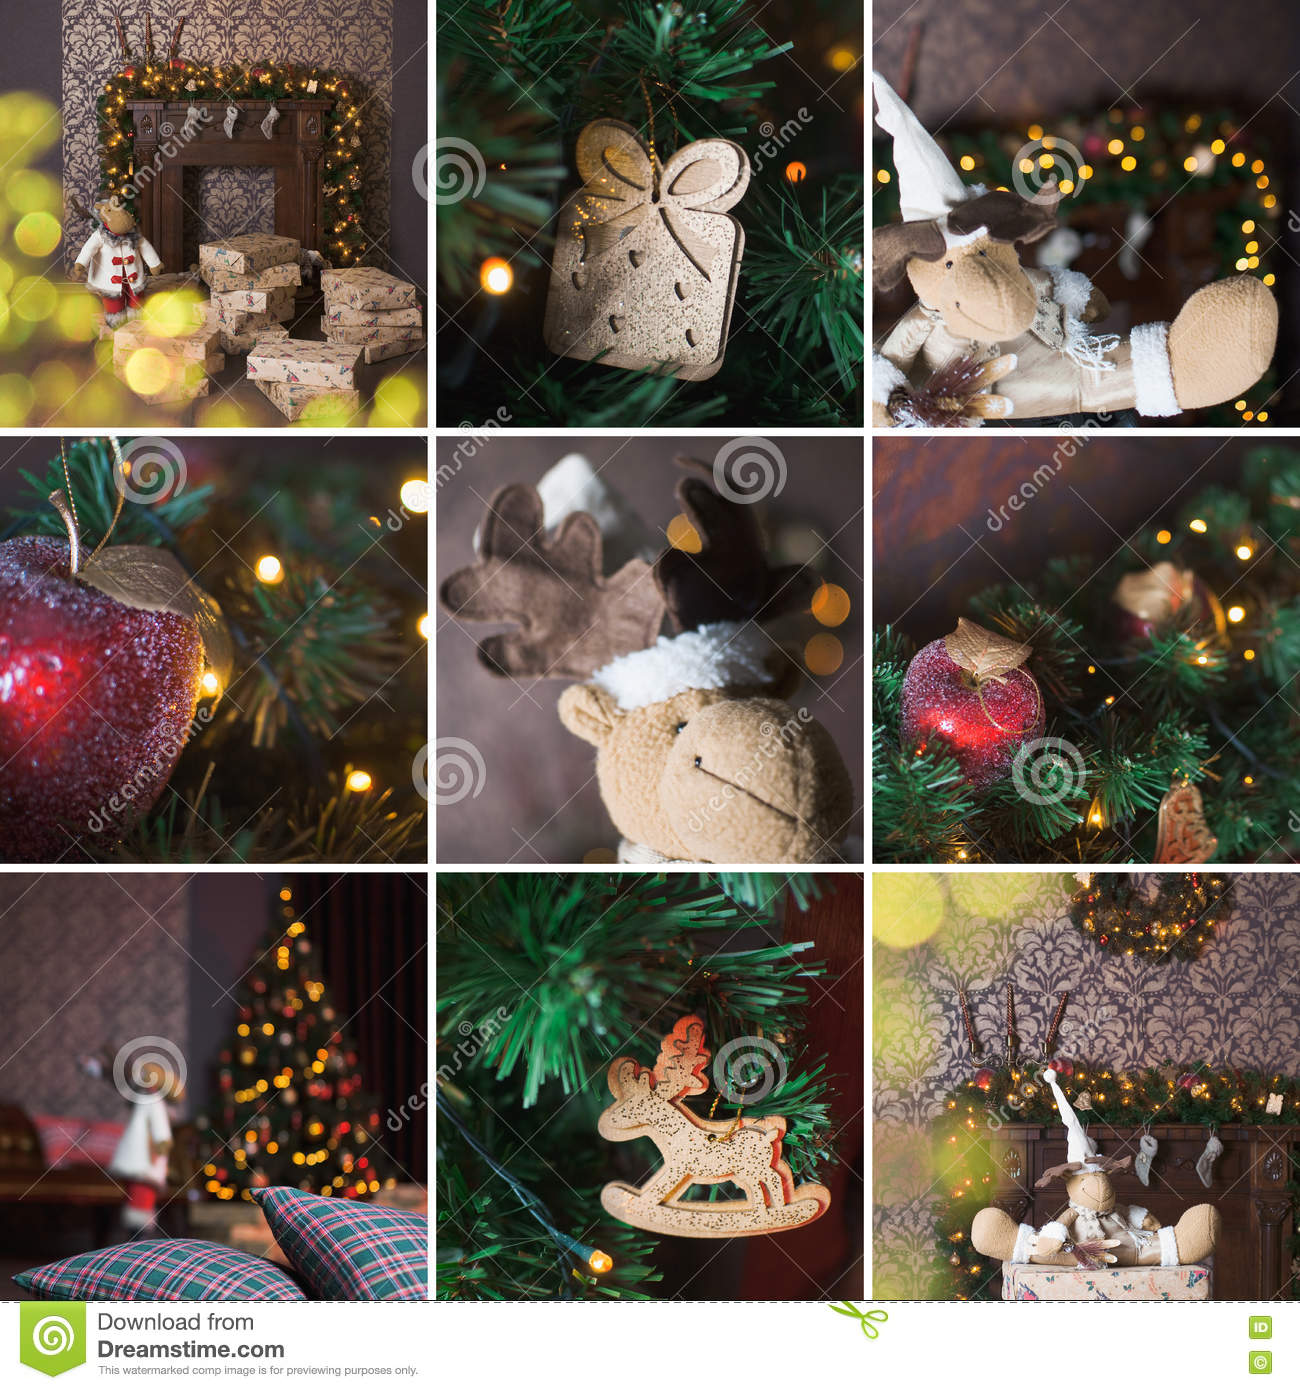 Collage of Christmas interior